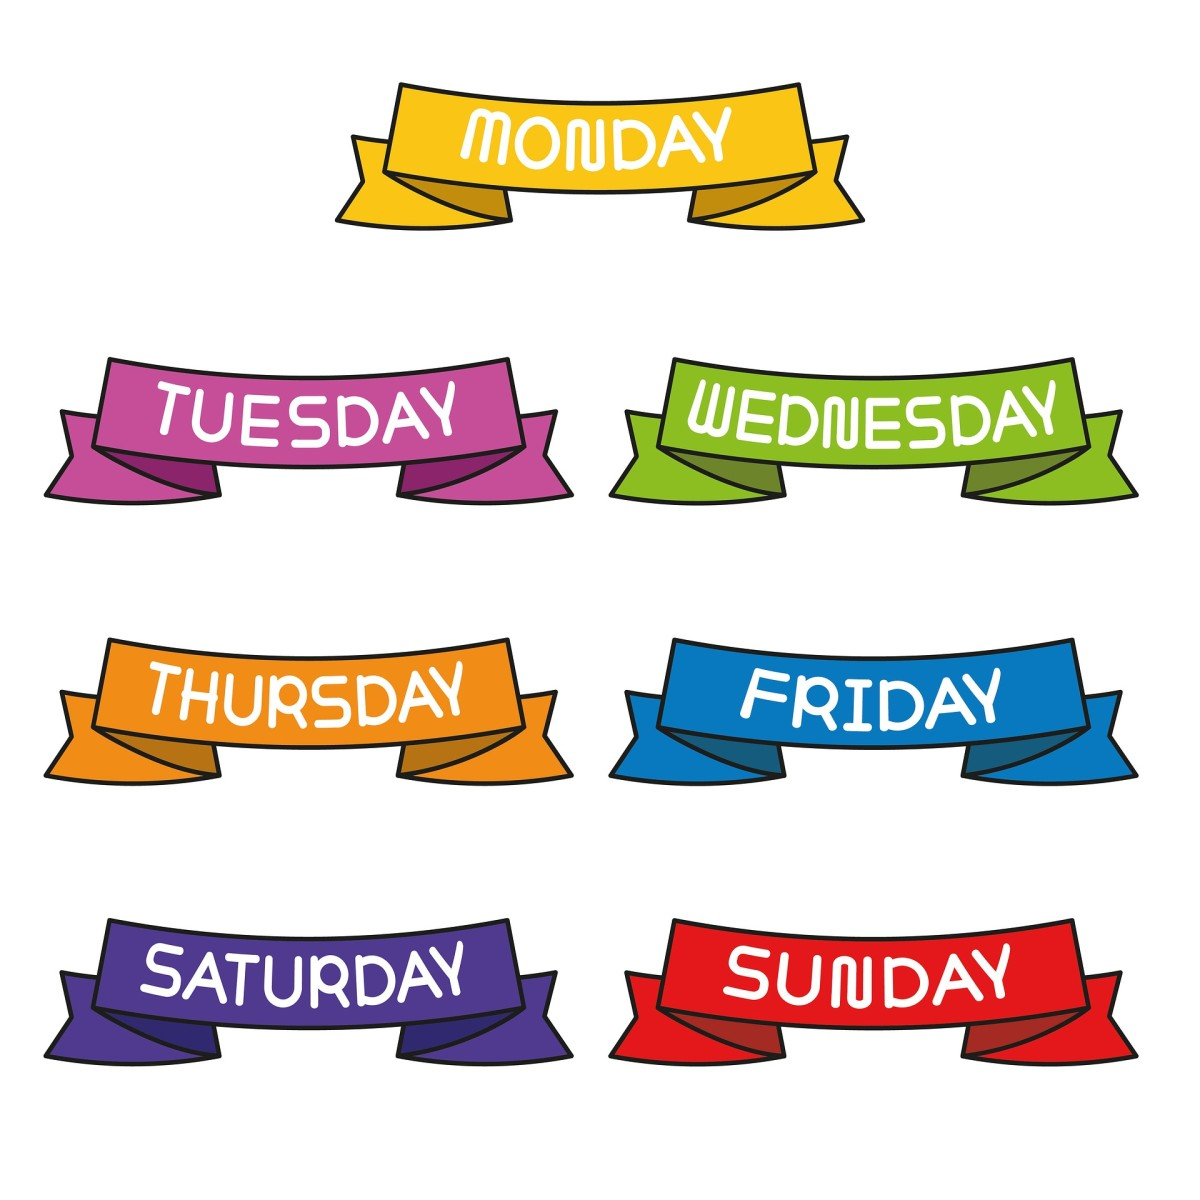 This article will provide information about the names of all the days of the week in French language.